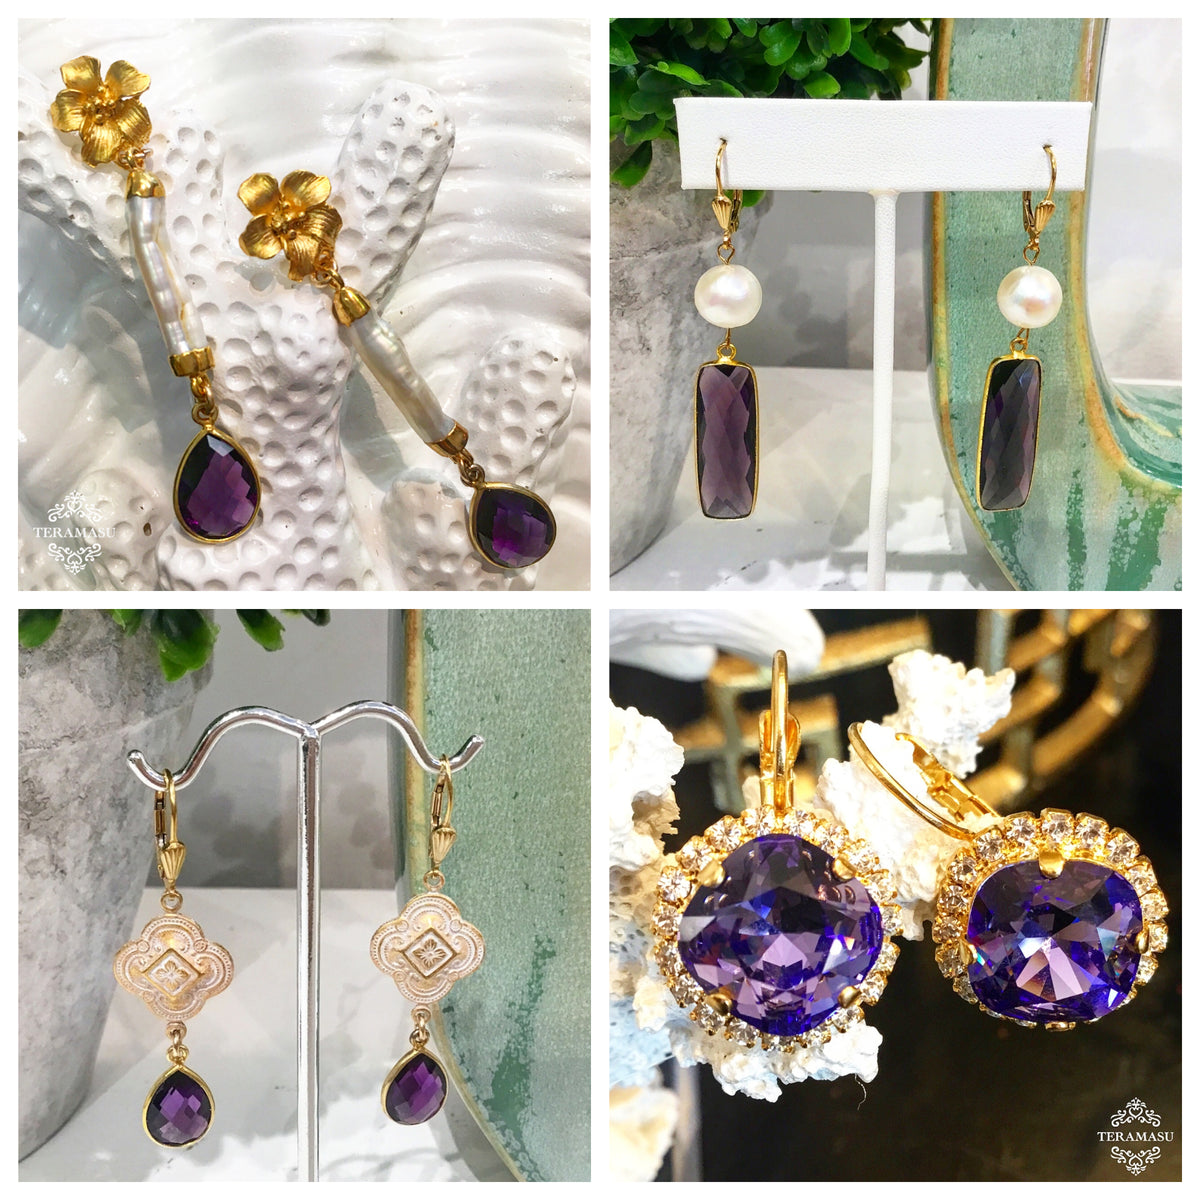 Monday Must-Haves: Gorgeous, Handmade Designer Purple Statement Earrings for Your One-of-a-Kind Style from Teramasu